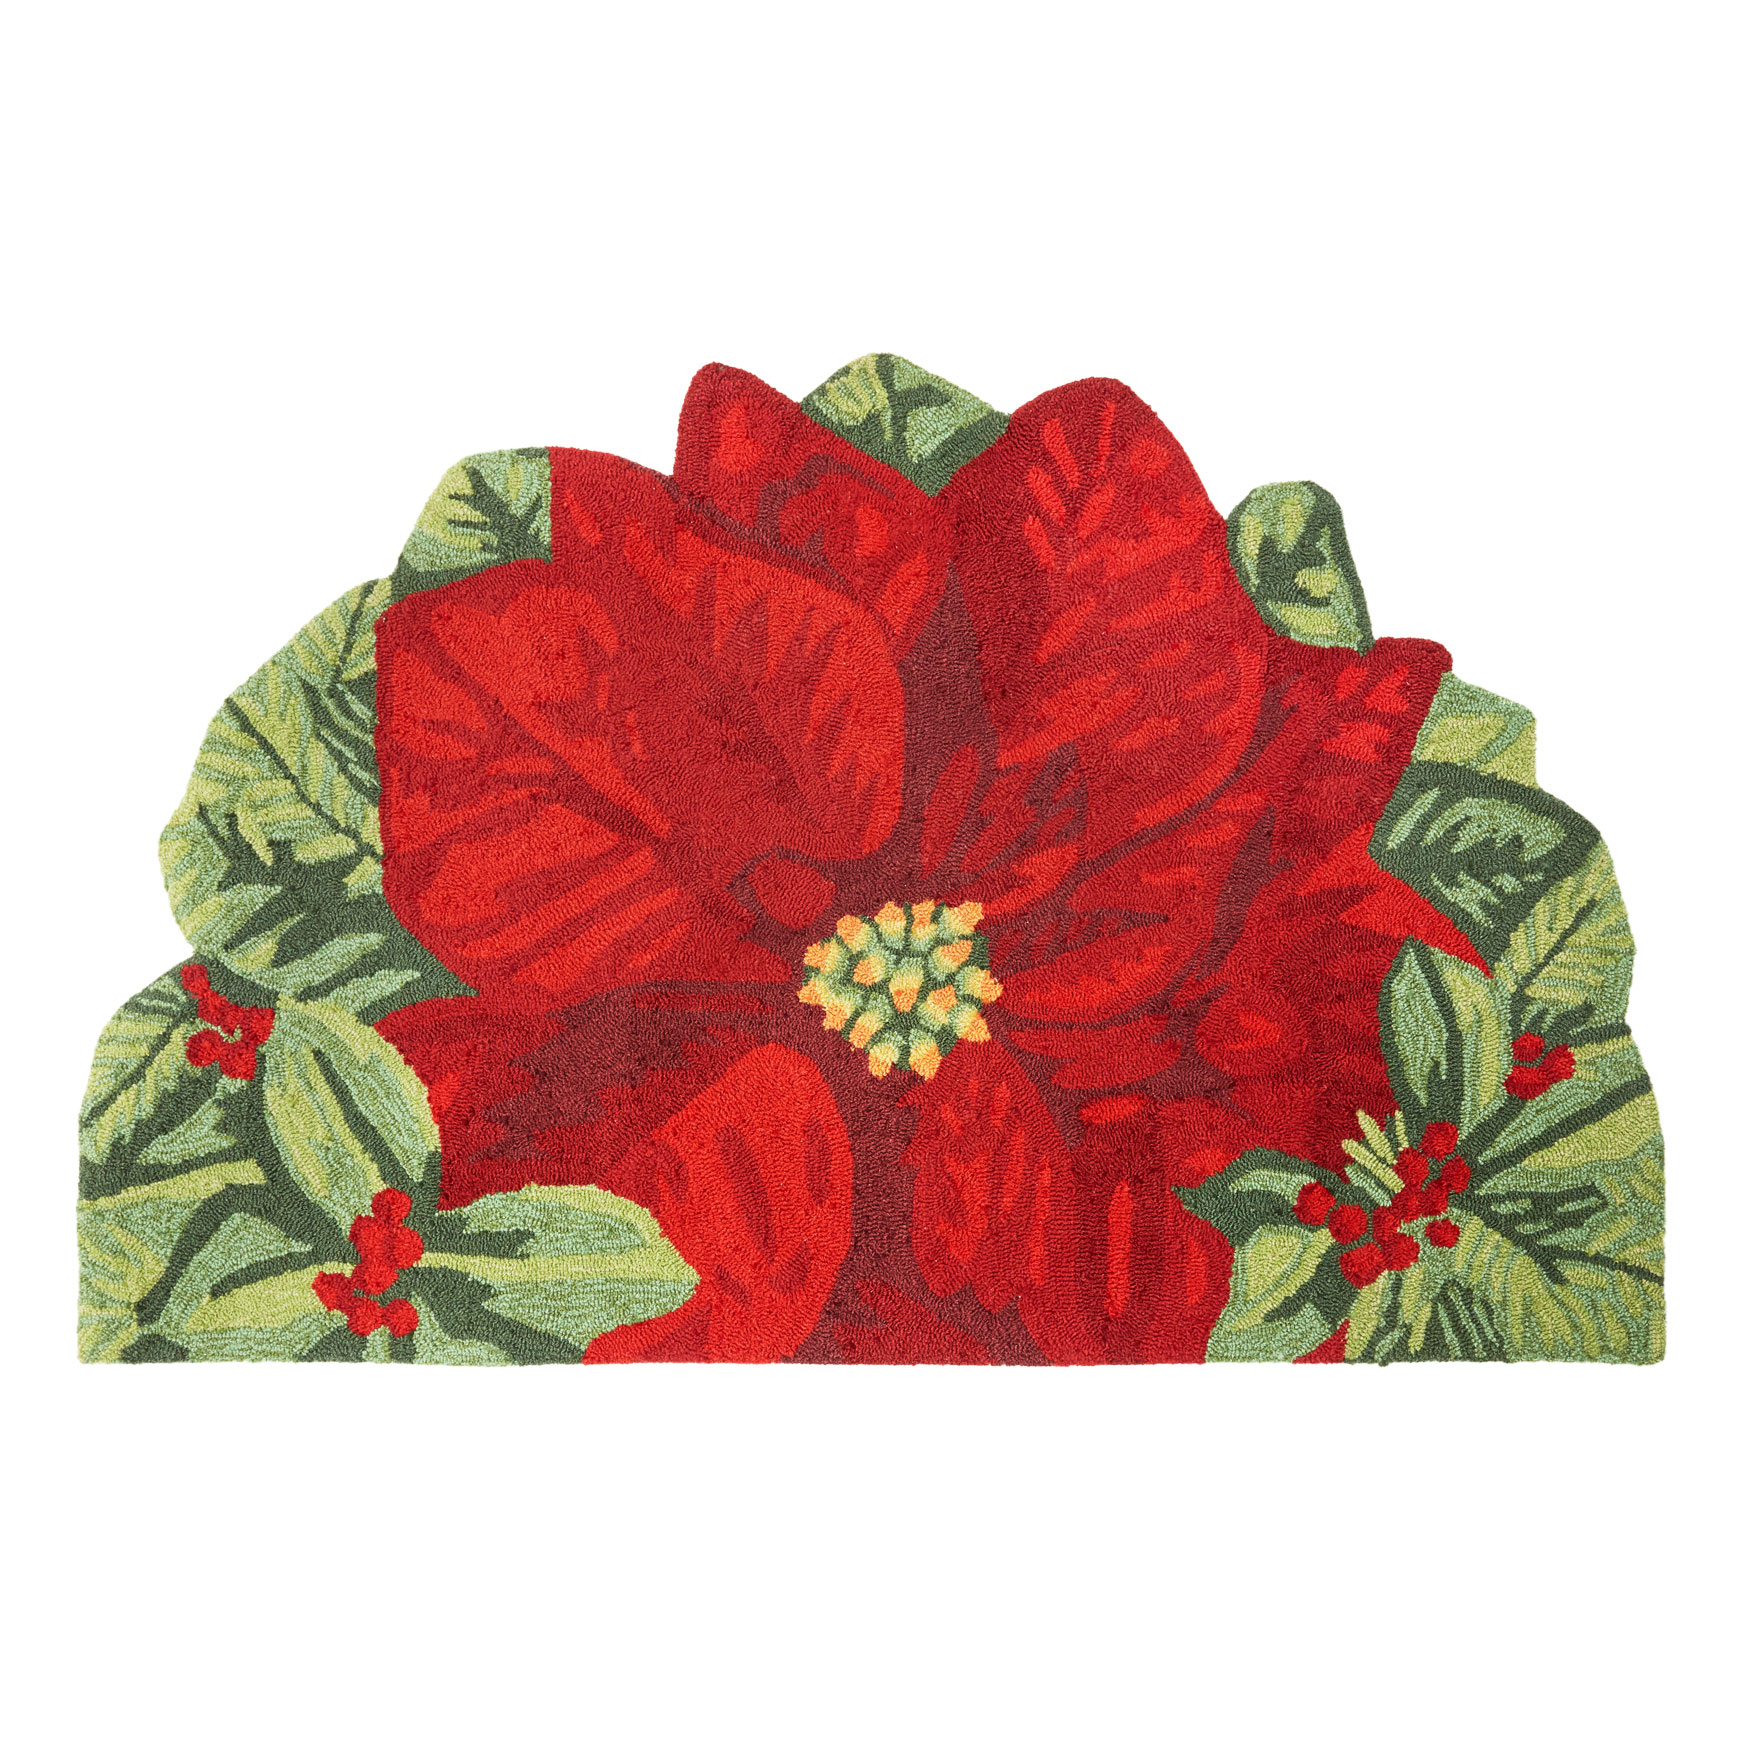 Large Half-Round Poinsettia Mat , MULTI